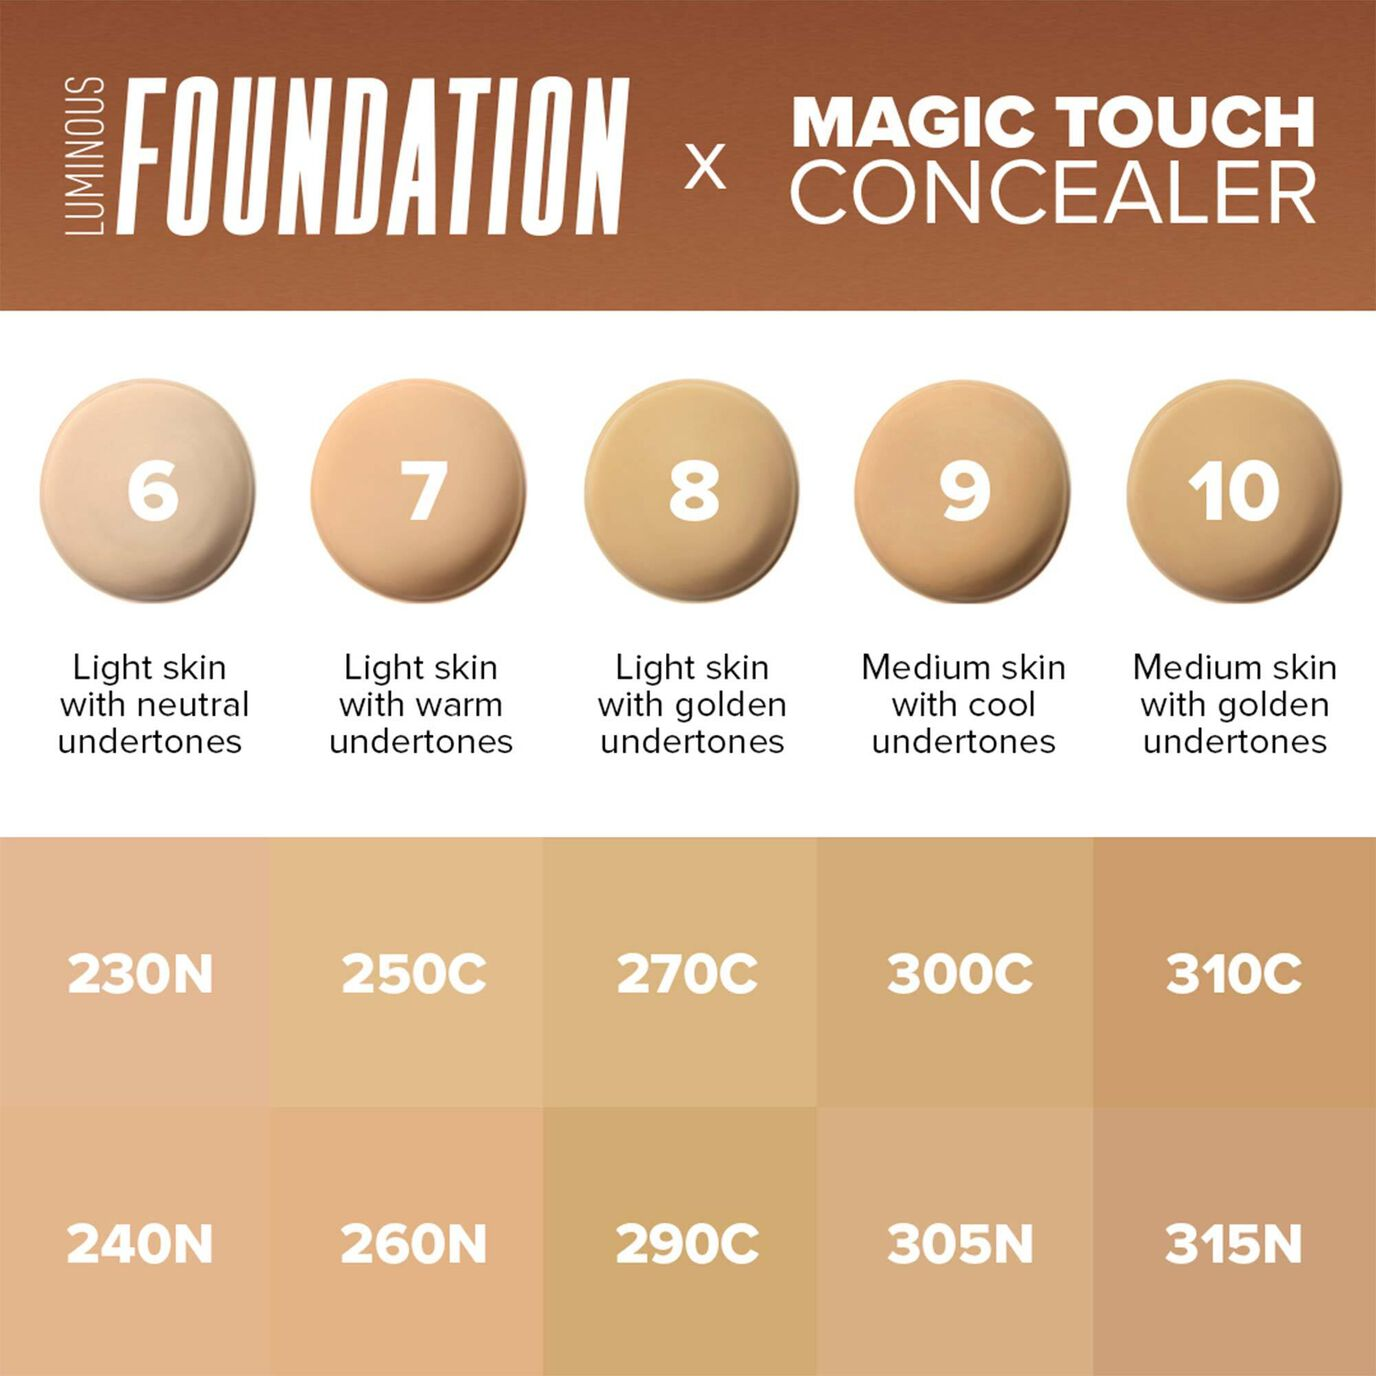 Magic Touch Concealer - Shade 9